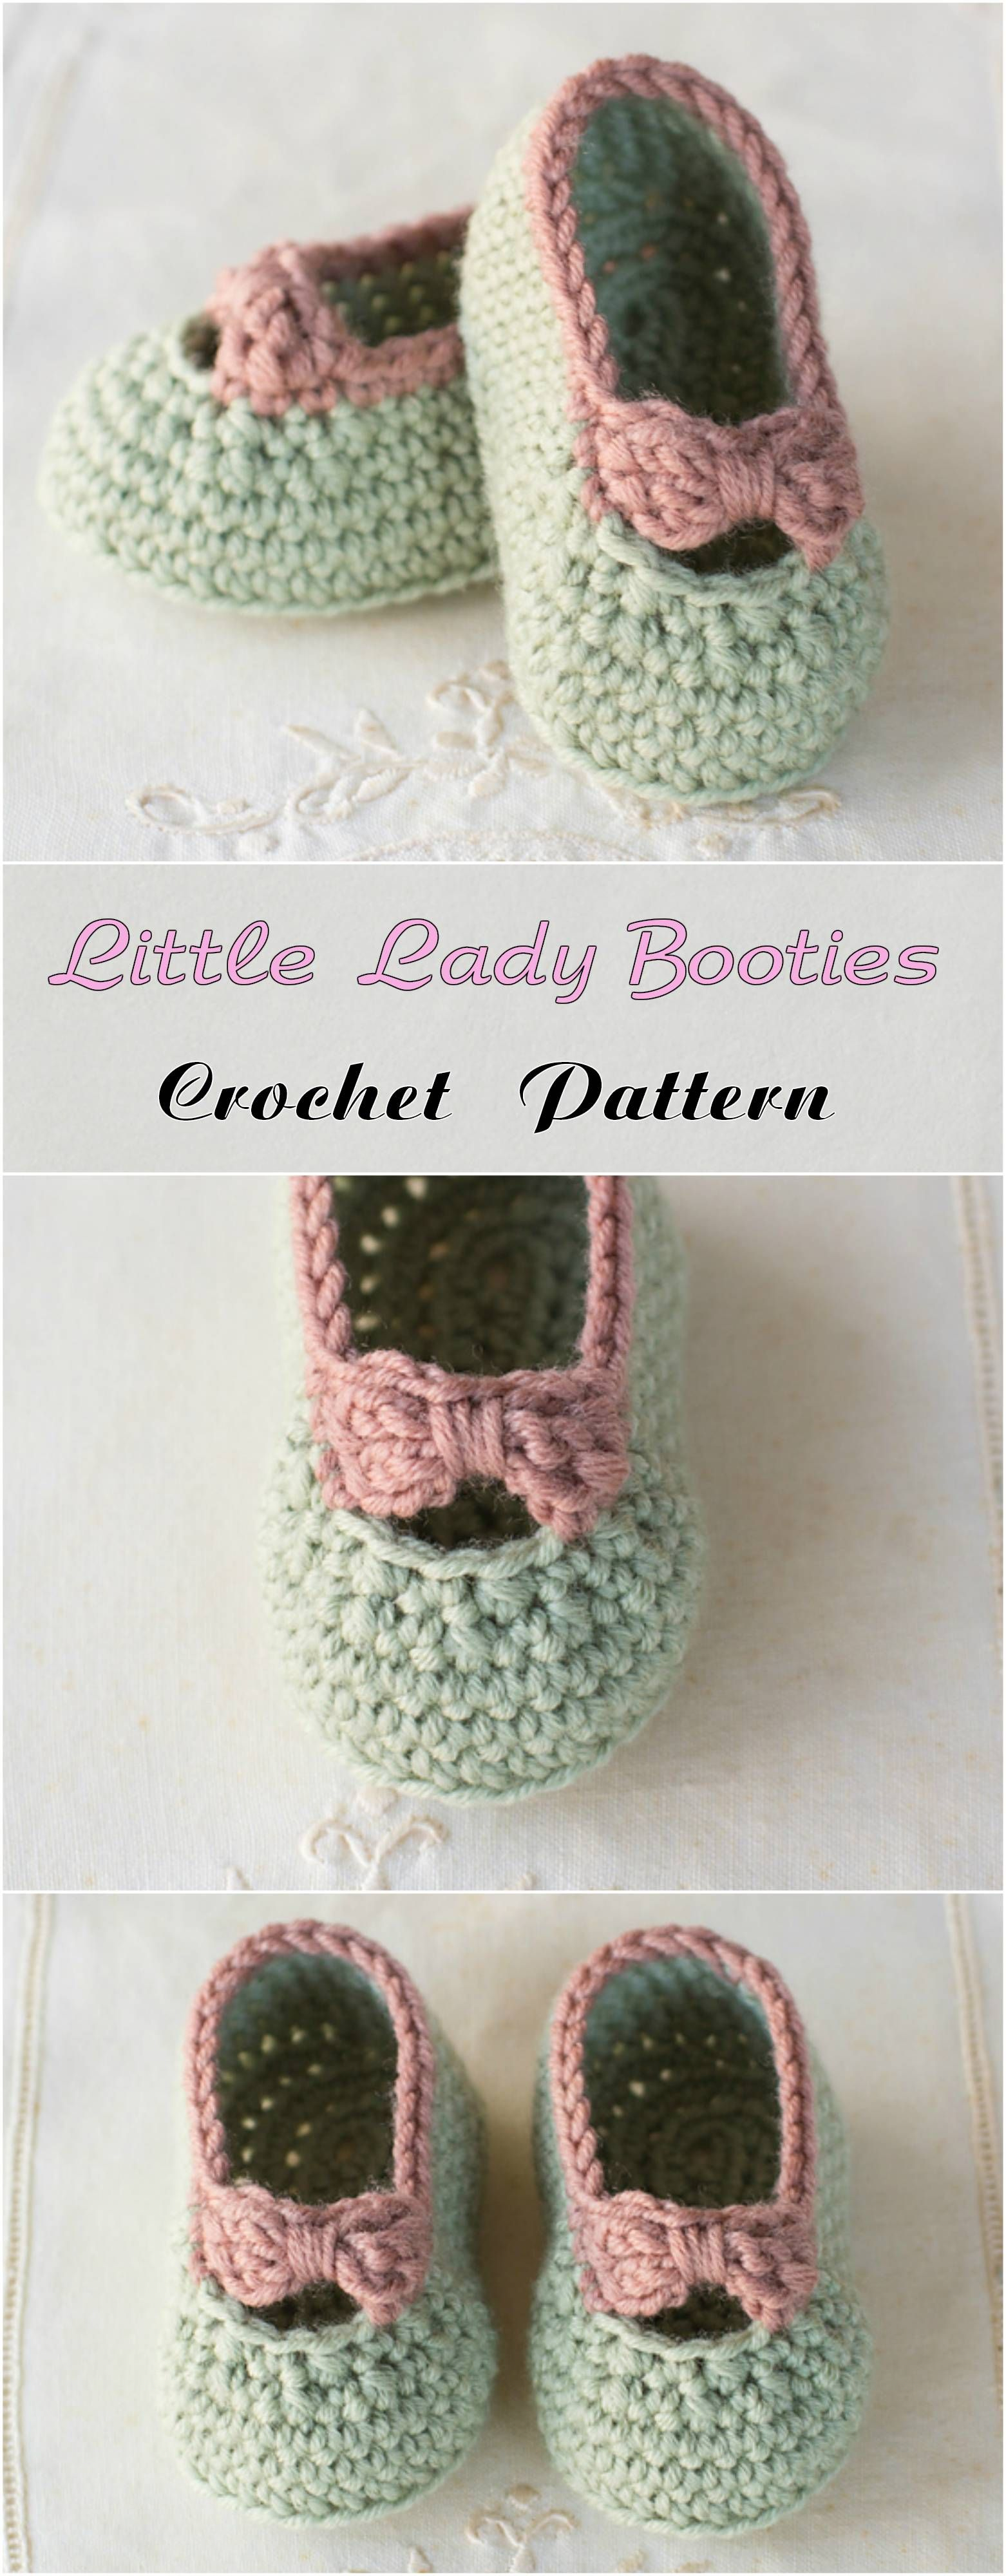 Little Lady Booties | Bebe, Zapatos y Ganchillo